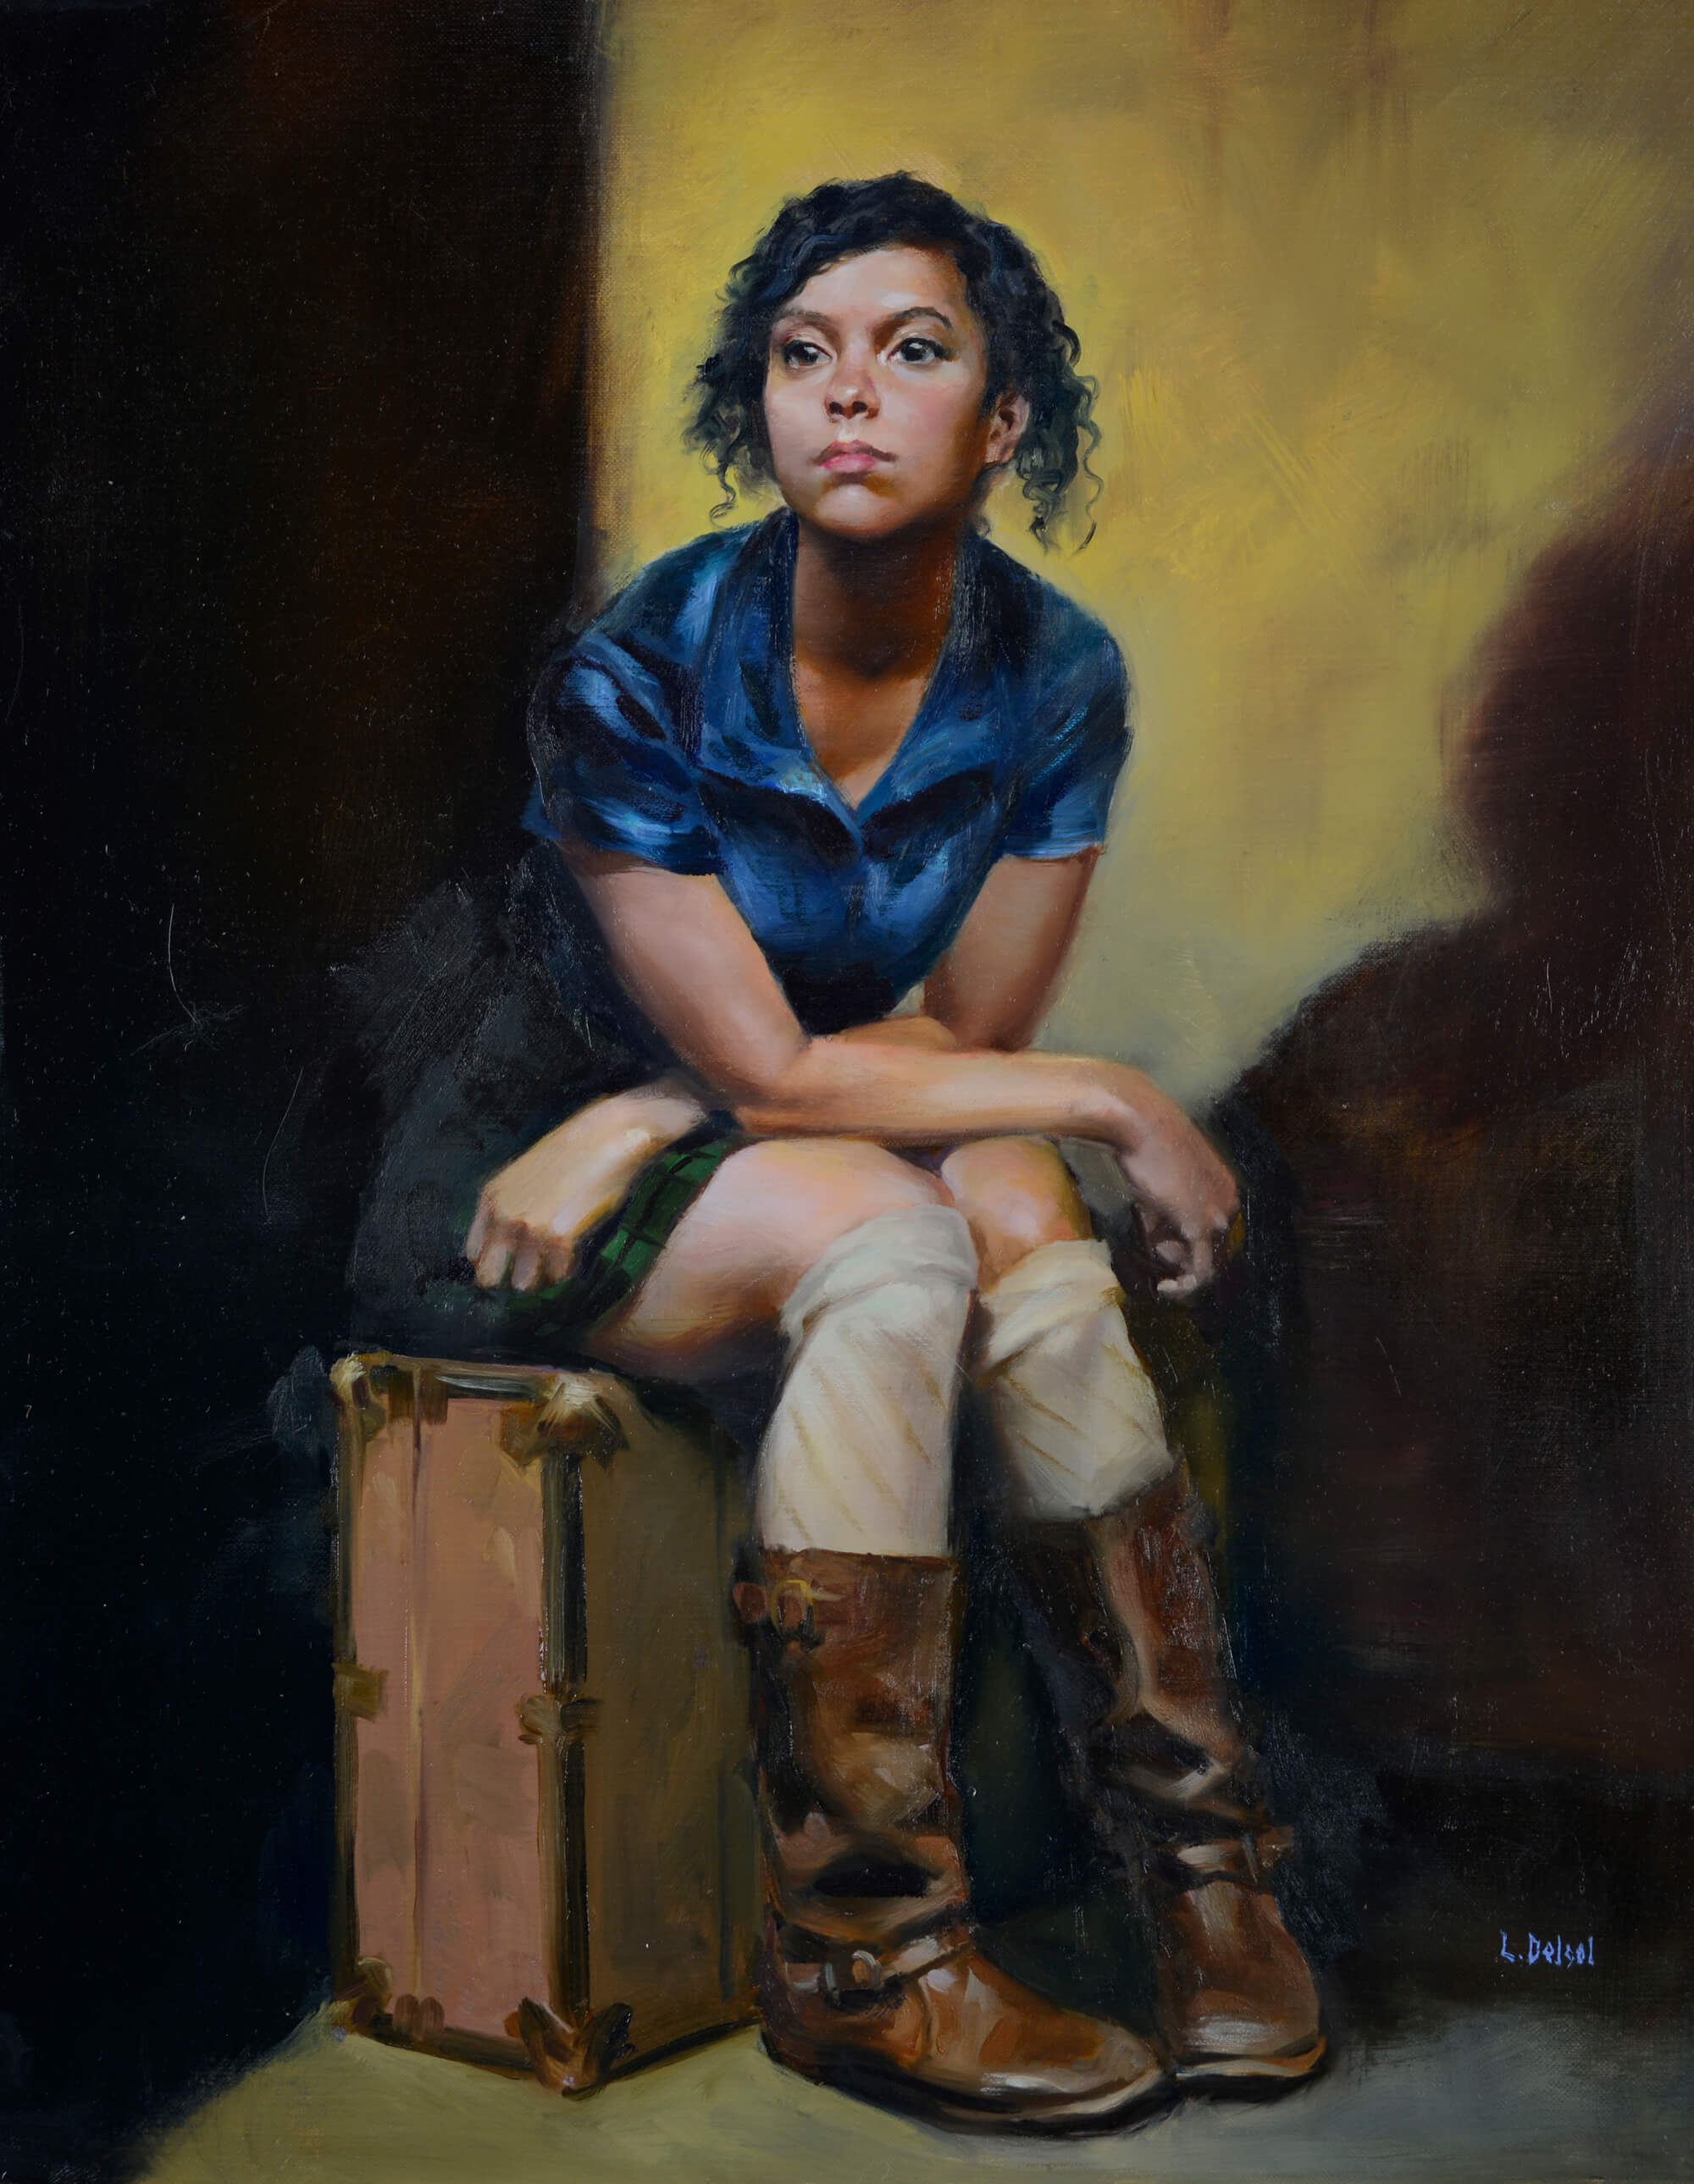 Figurative oil portrait of a young woman wearing a blue dress knee socks and boots sitting on a suitcase